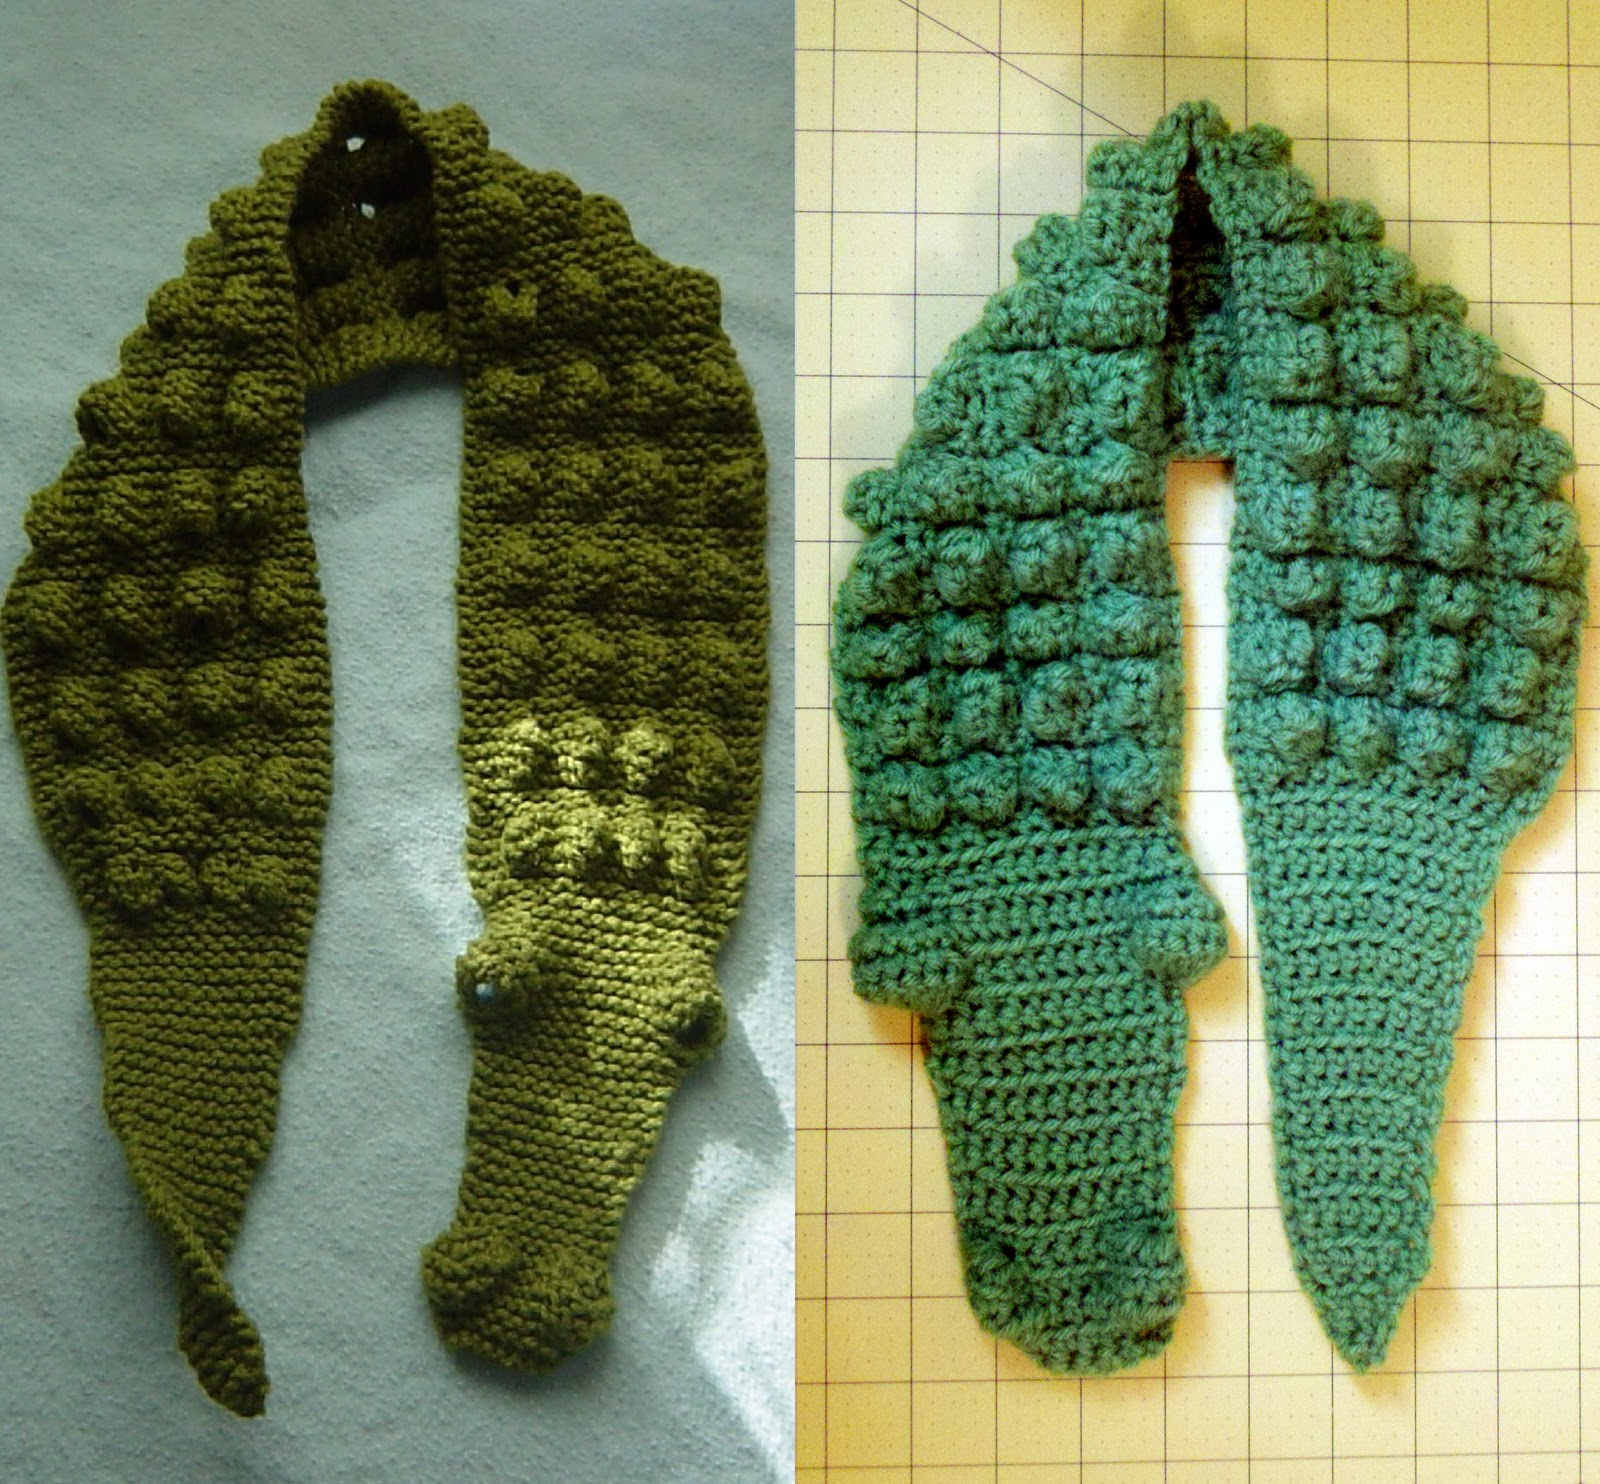 and Shiny  Lovely and Good Crochet Gator Scarf for Kids  Pattern Crochet Animal Scarves For Kids